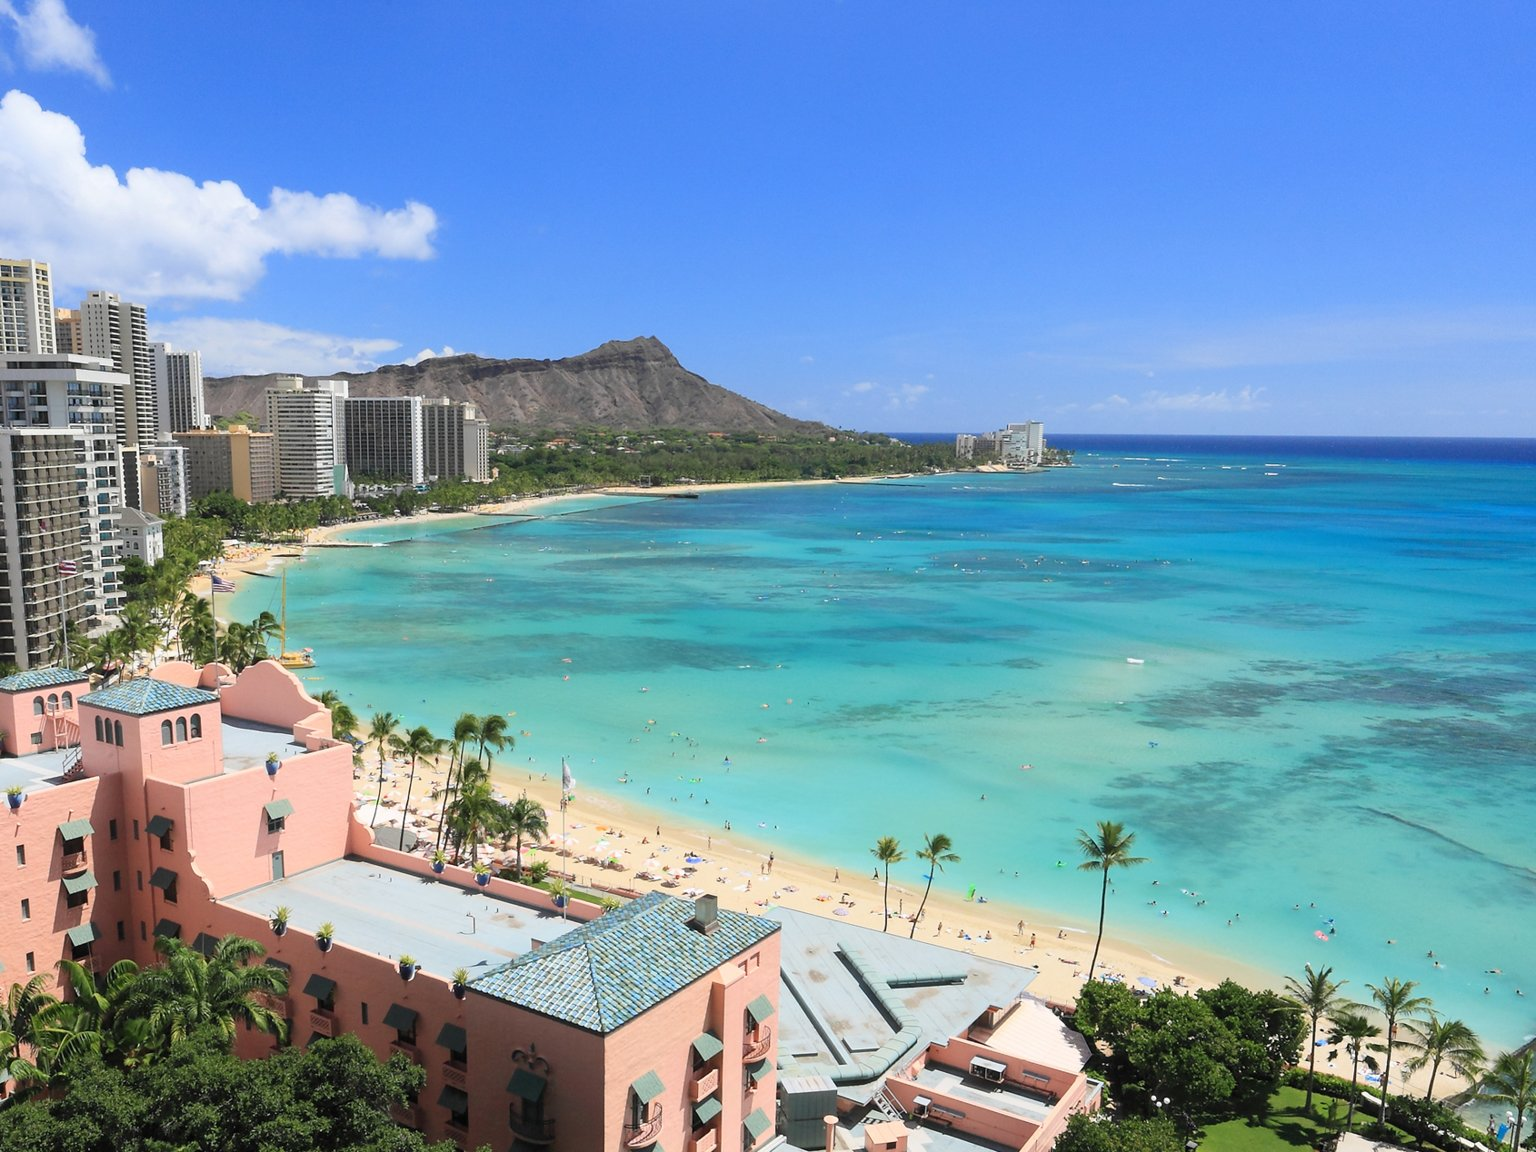 Walk along Beautiful Waikiki Beach! - Getaway for The Coming Winter!!!!